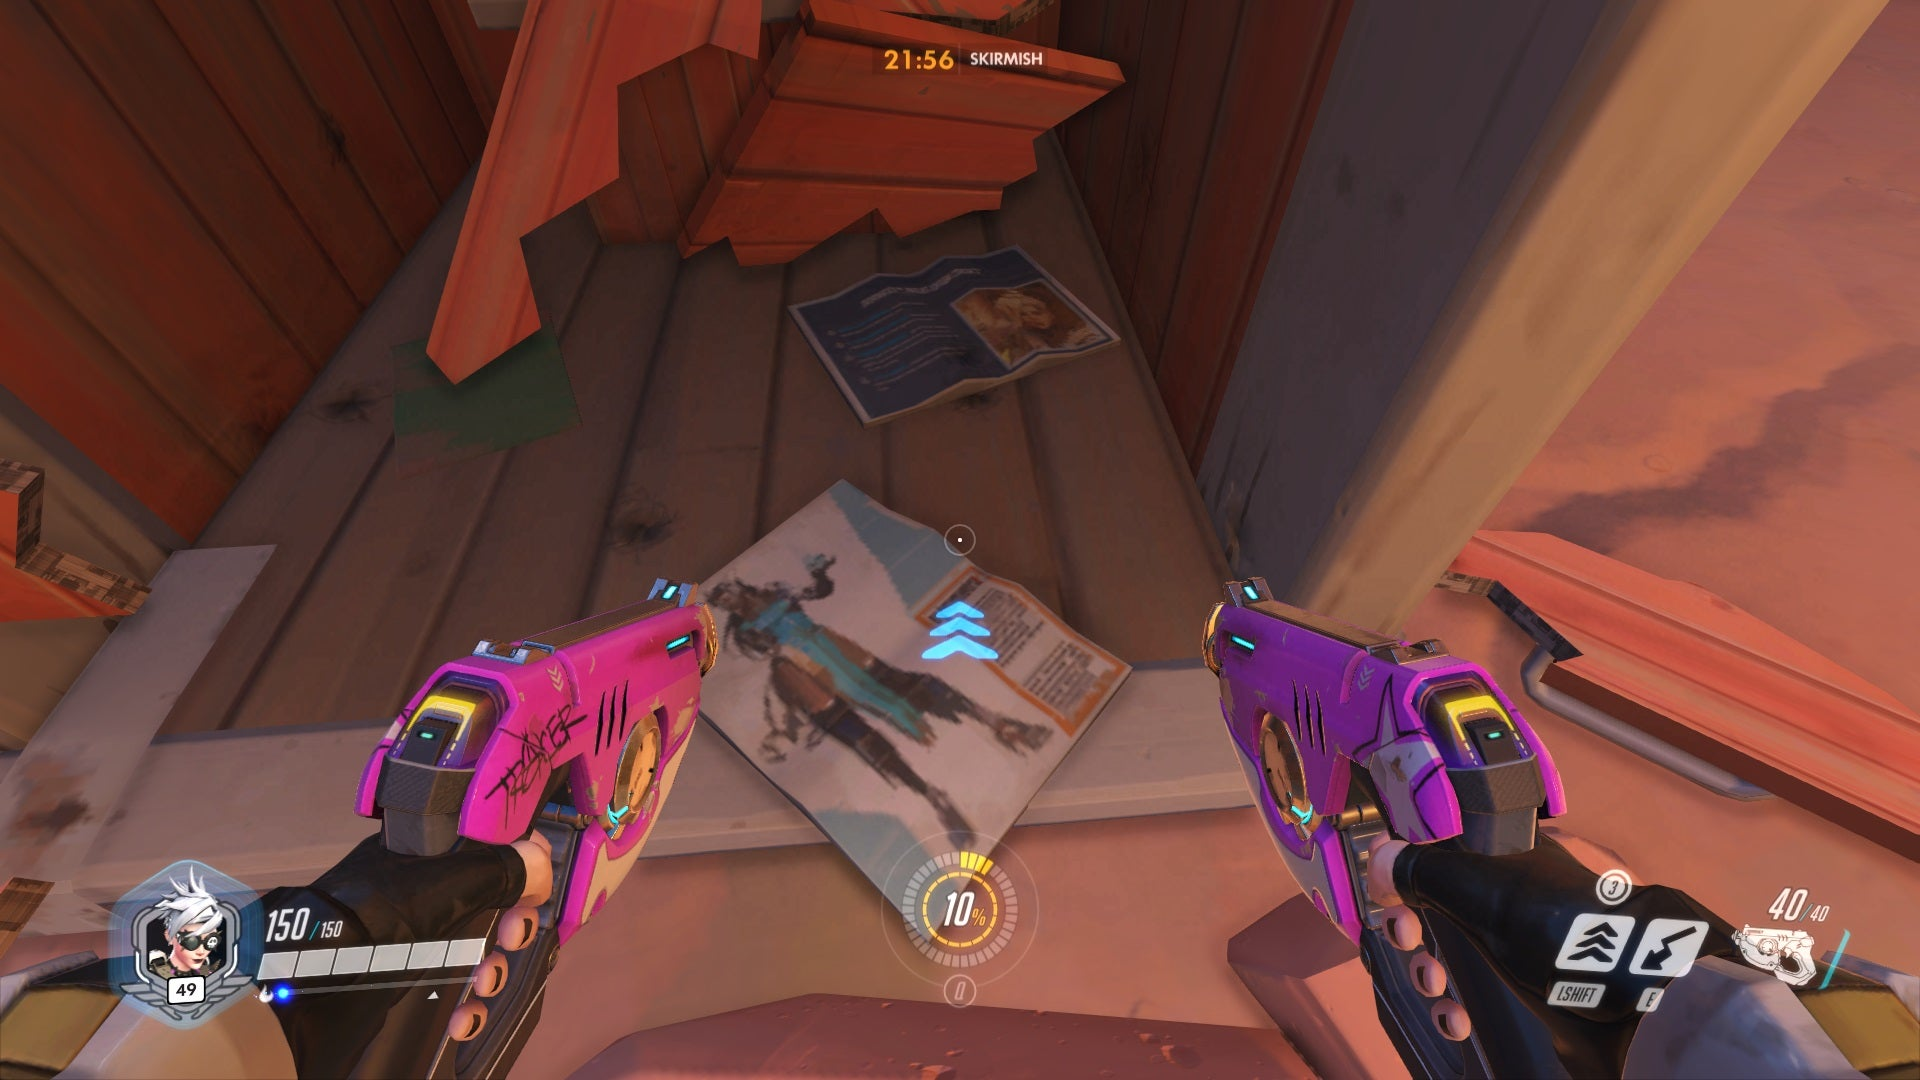 Blizzard Patches Masturbation Gag Out Of Overwatch